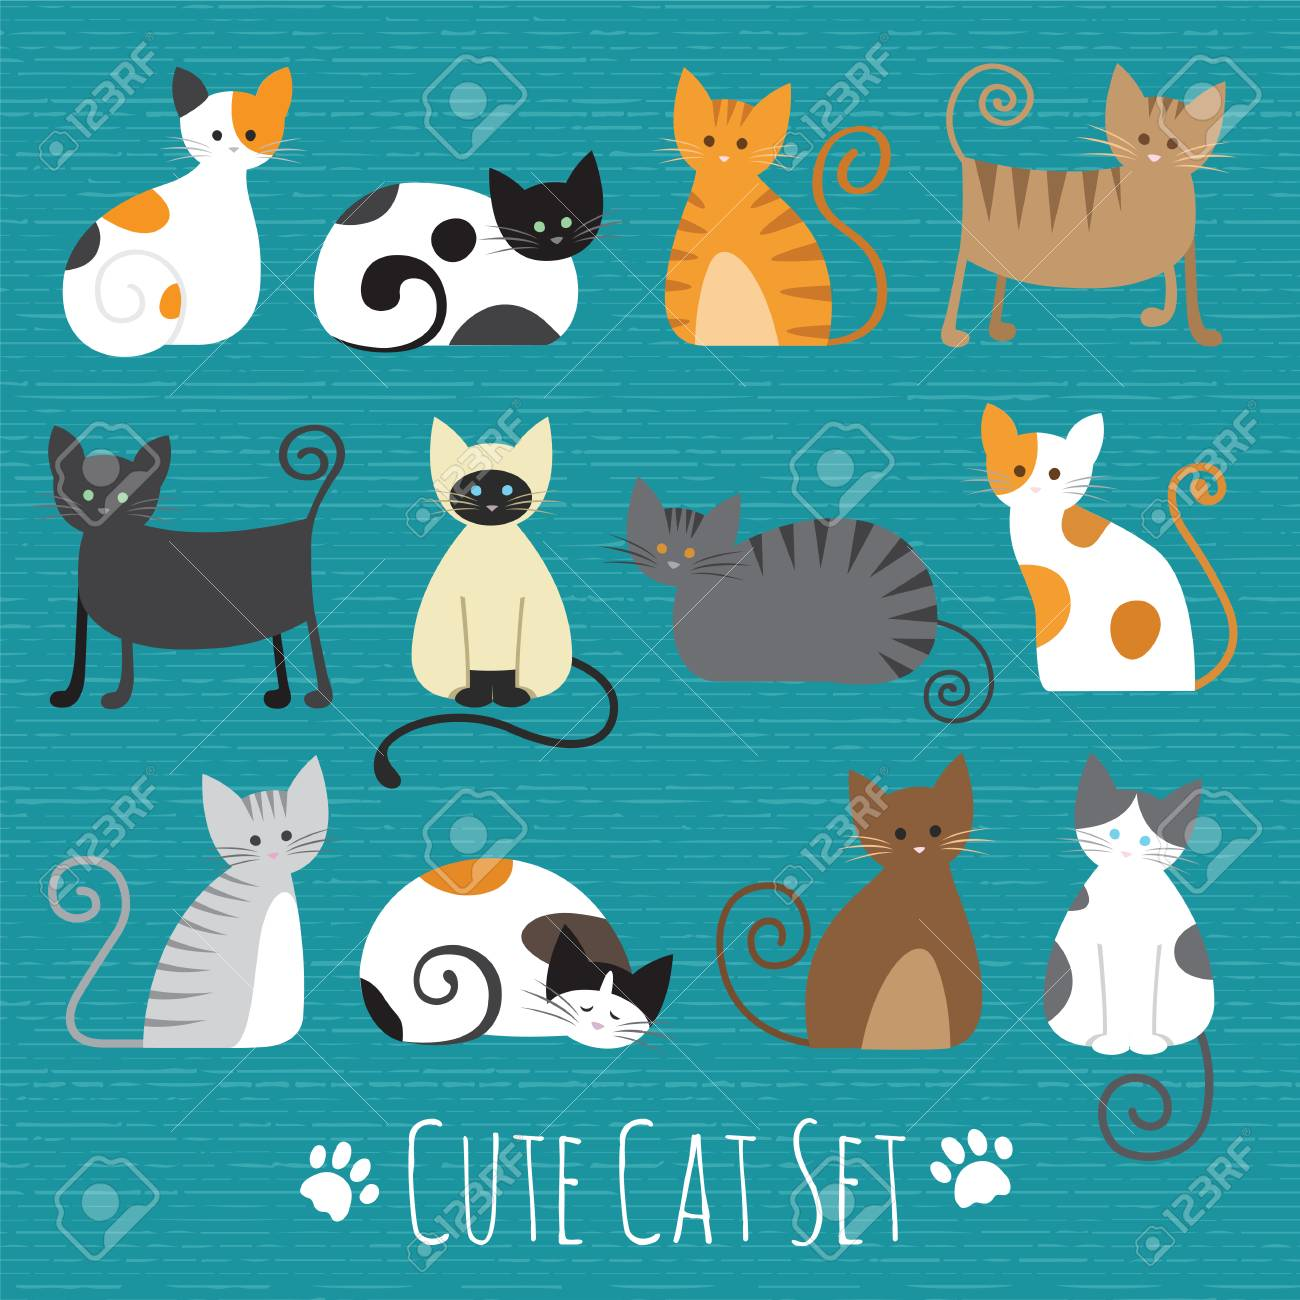 Cat Set With White Grey Orange Brown Black Cute Cats Flat Royalty Free Cliparts Vectors And Stock Illustration Image 73776821